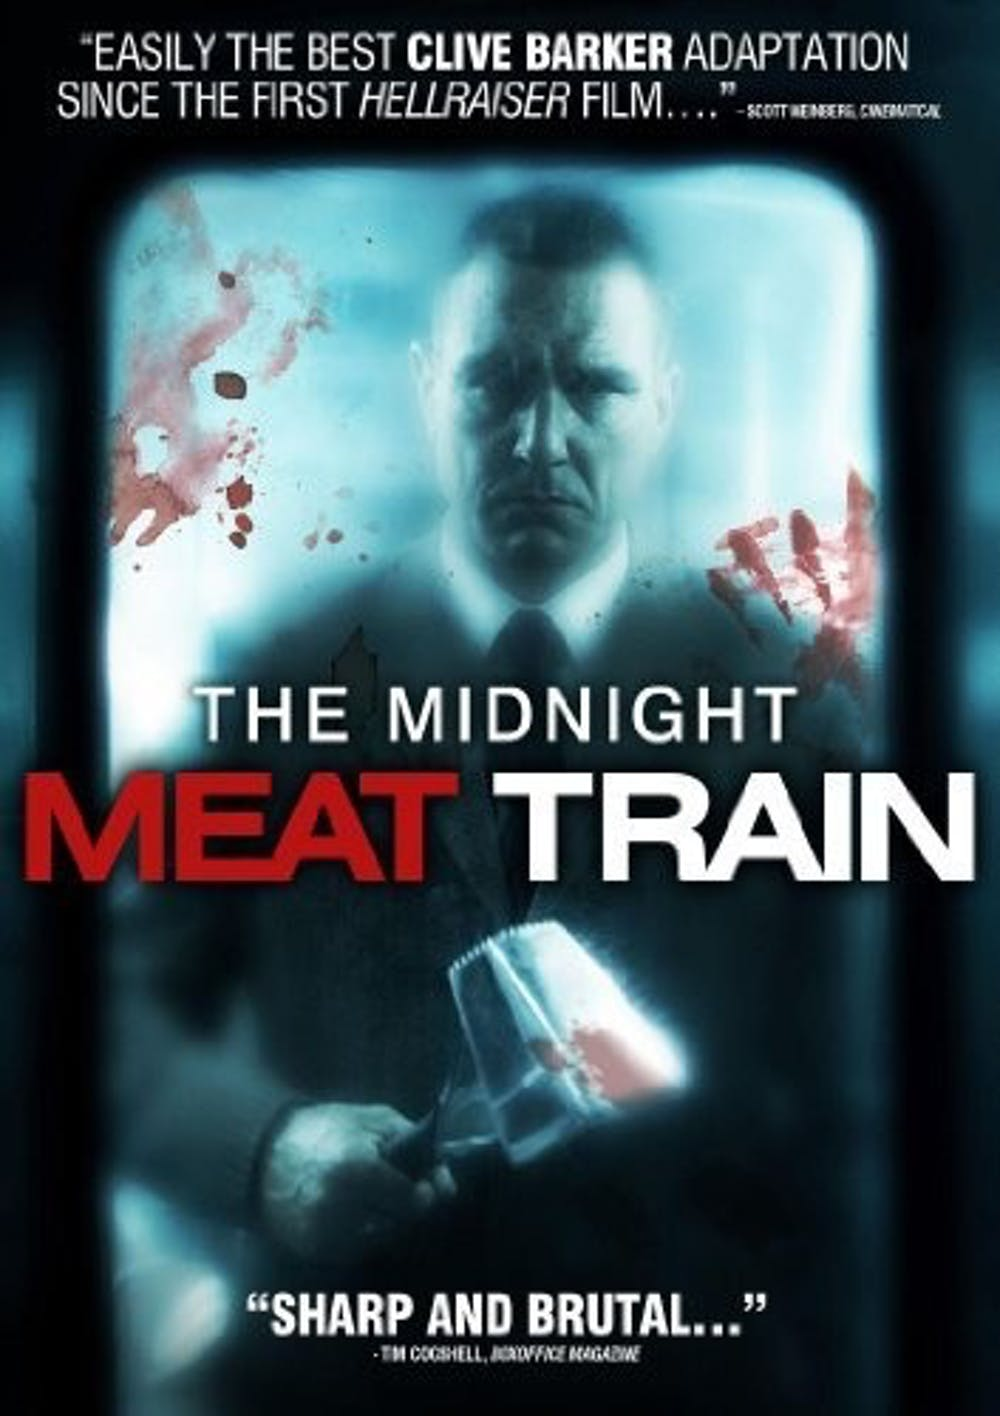 Grindhouse Review: 'The Midnight Meat Train'